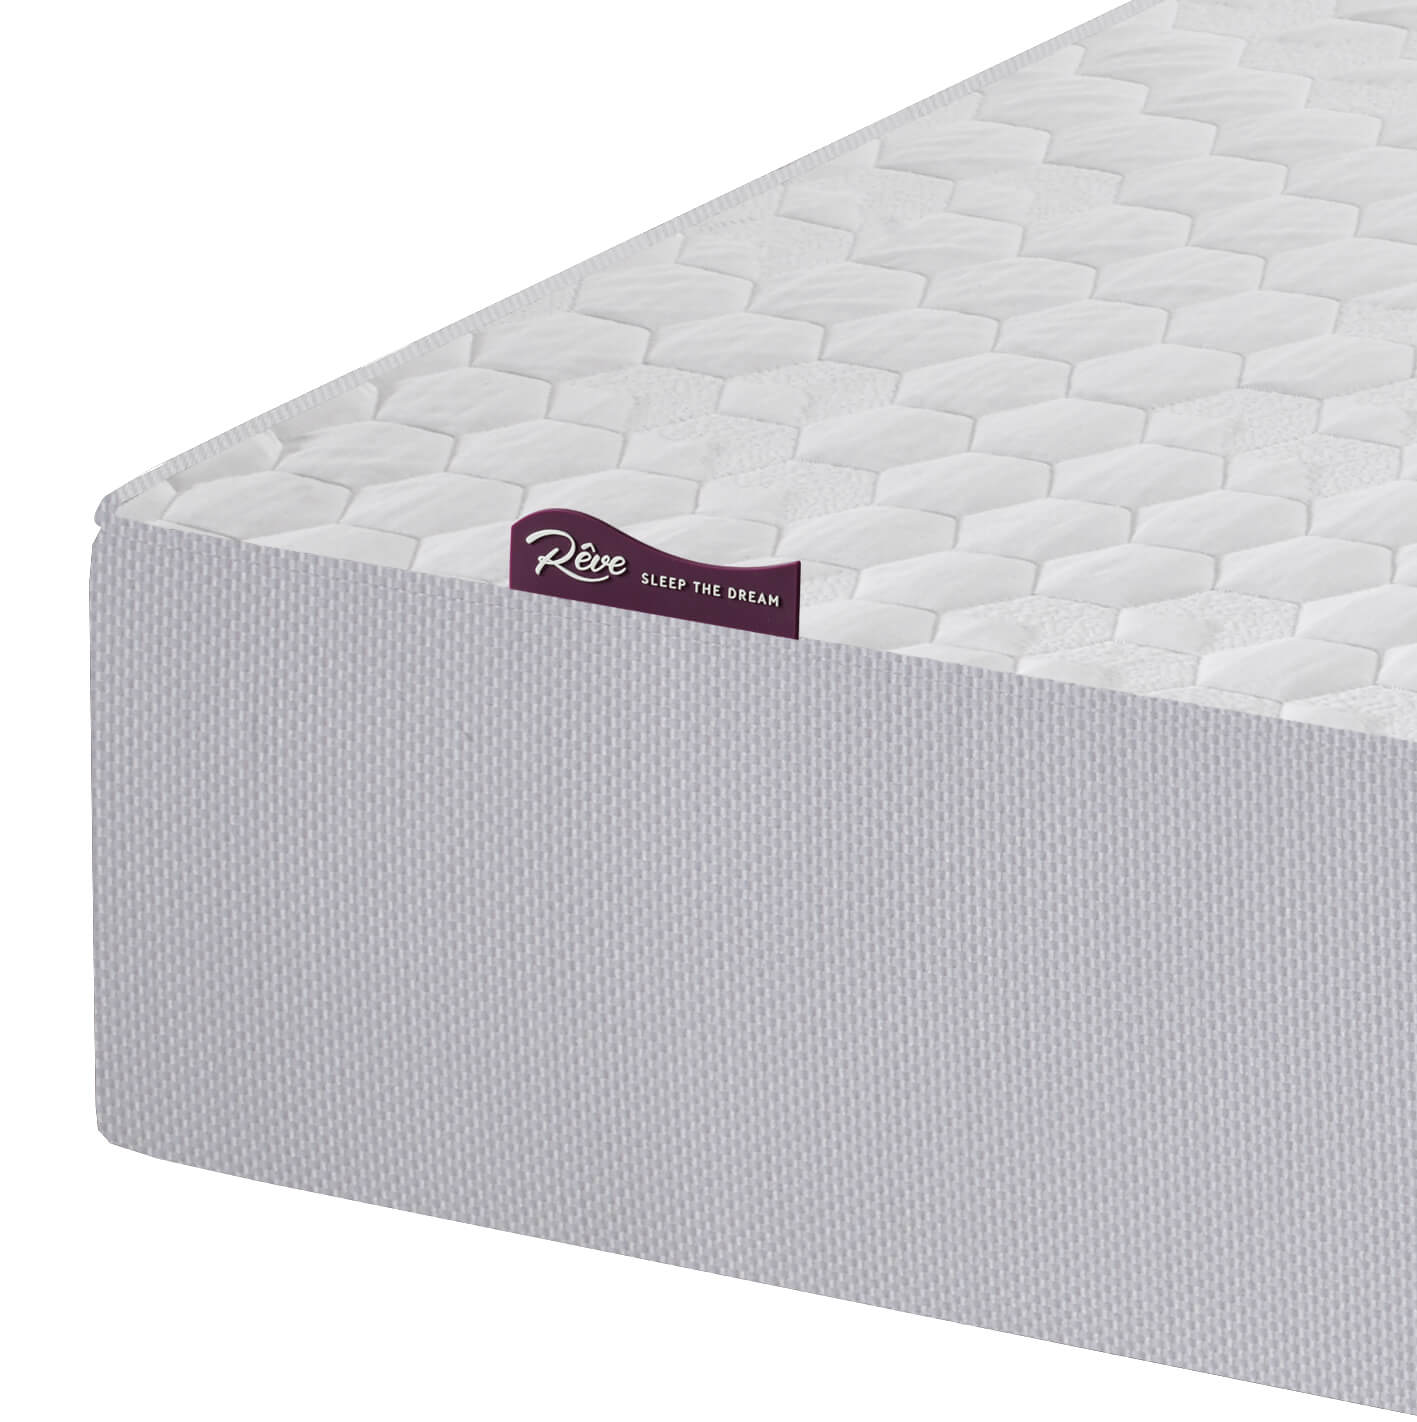 cheapest mattress mattresses a unbelievable in comfort quality box bedinabox